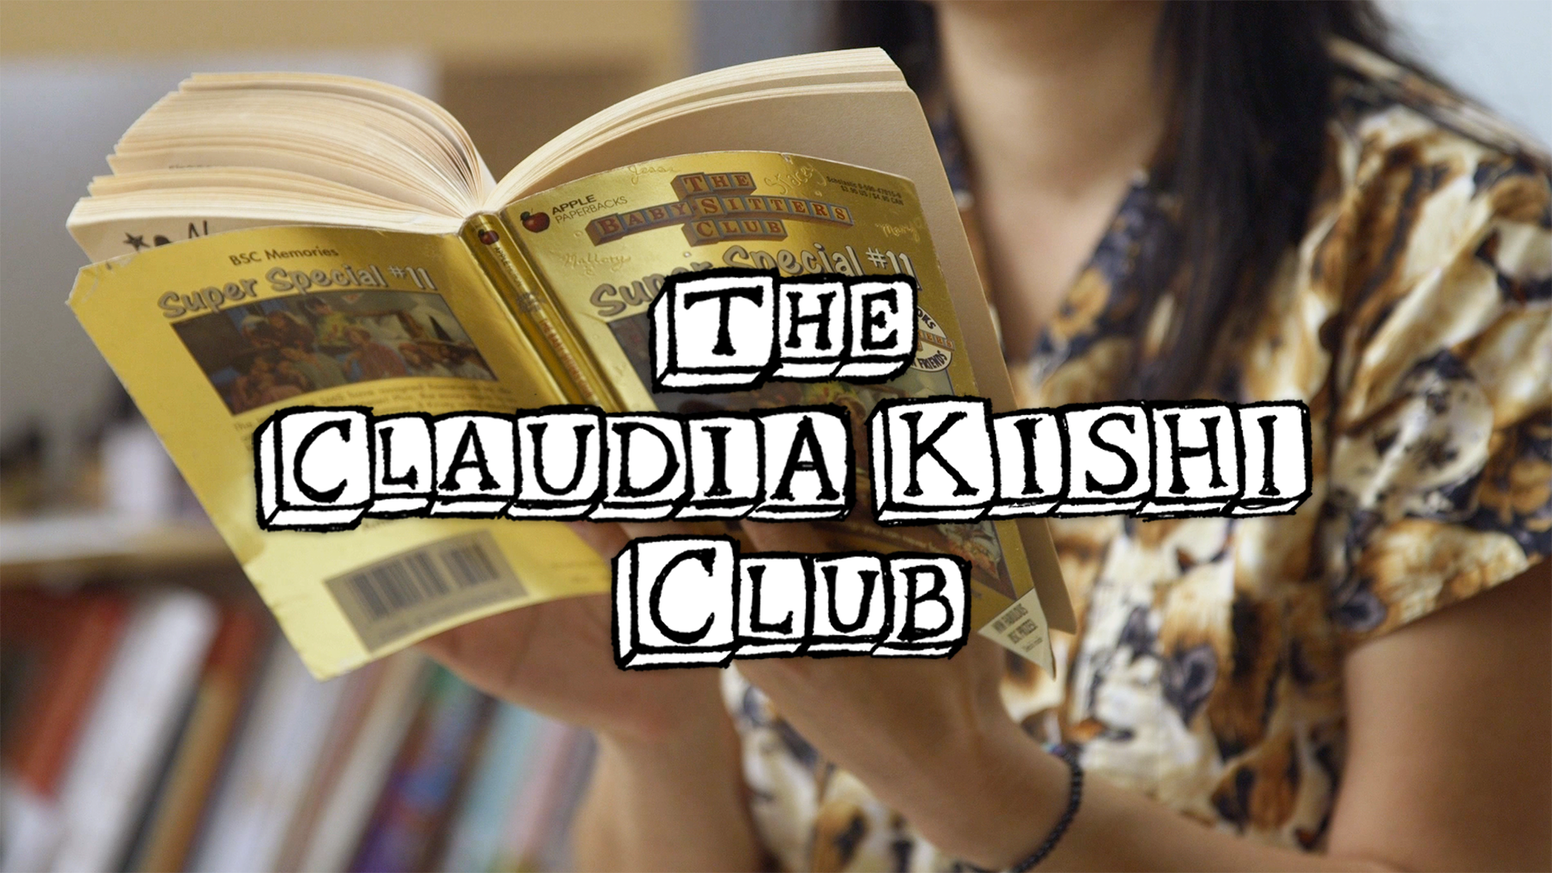 A love letter to Claudia Kishi, the iconic character who inspired a generation of Asian American women and creators of color.